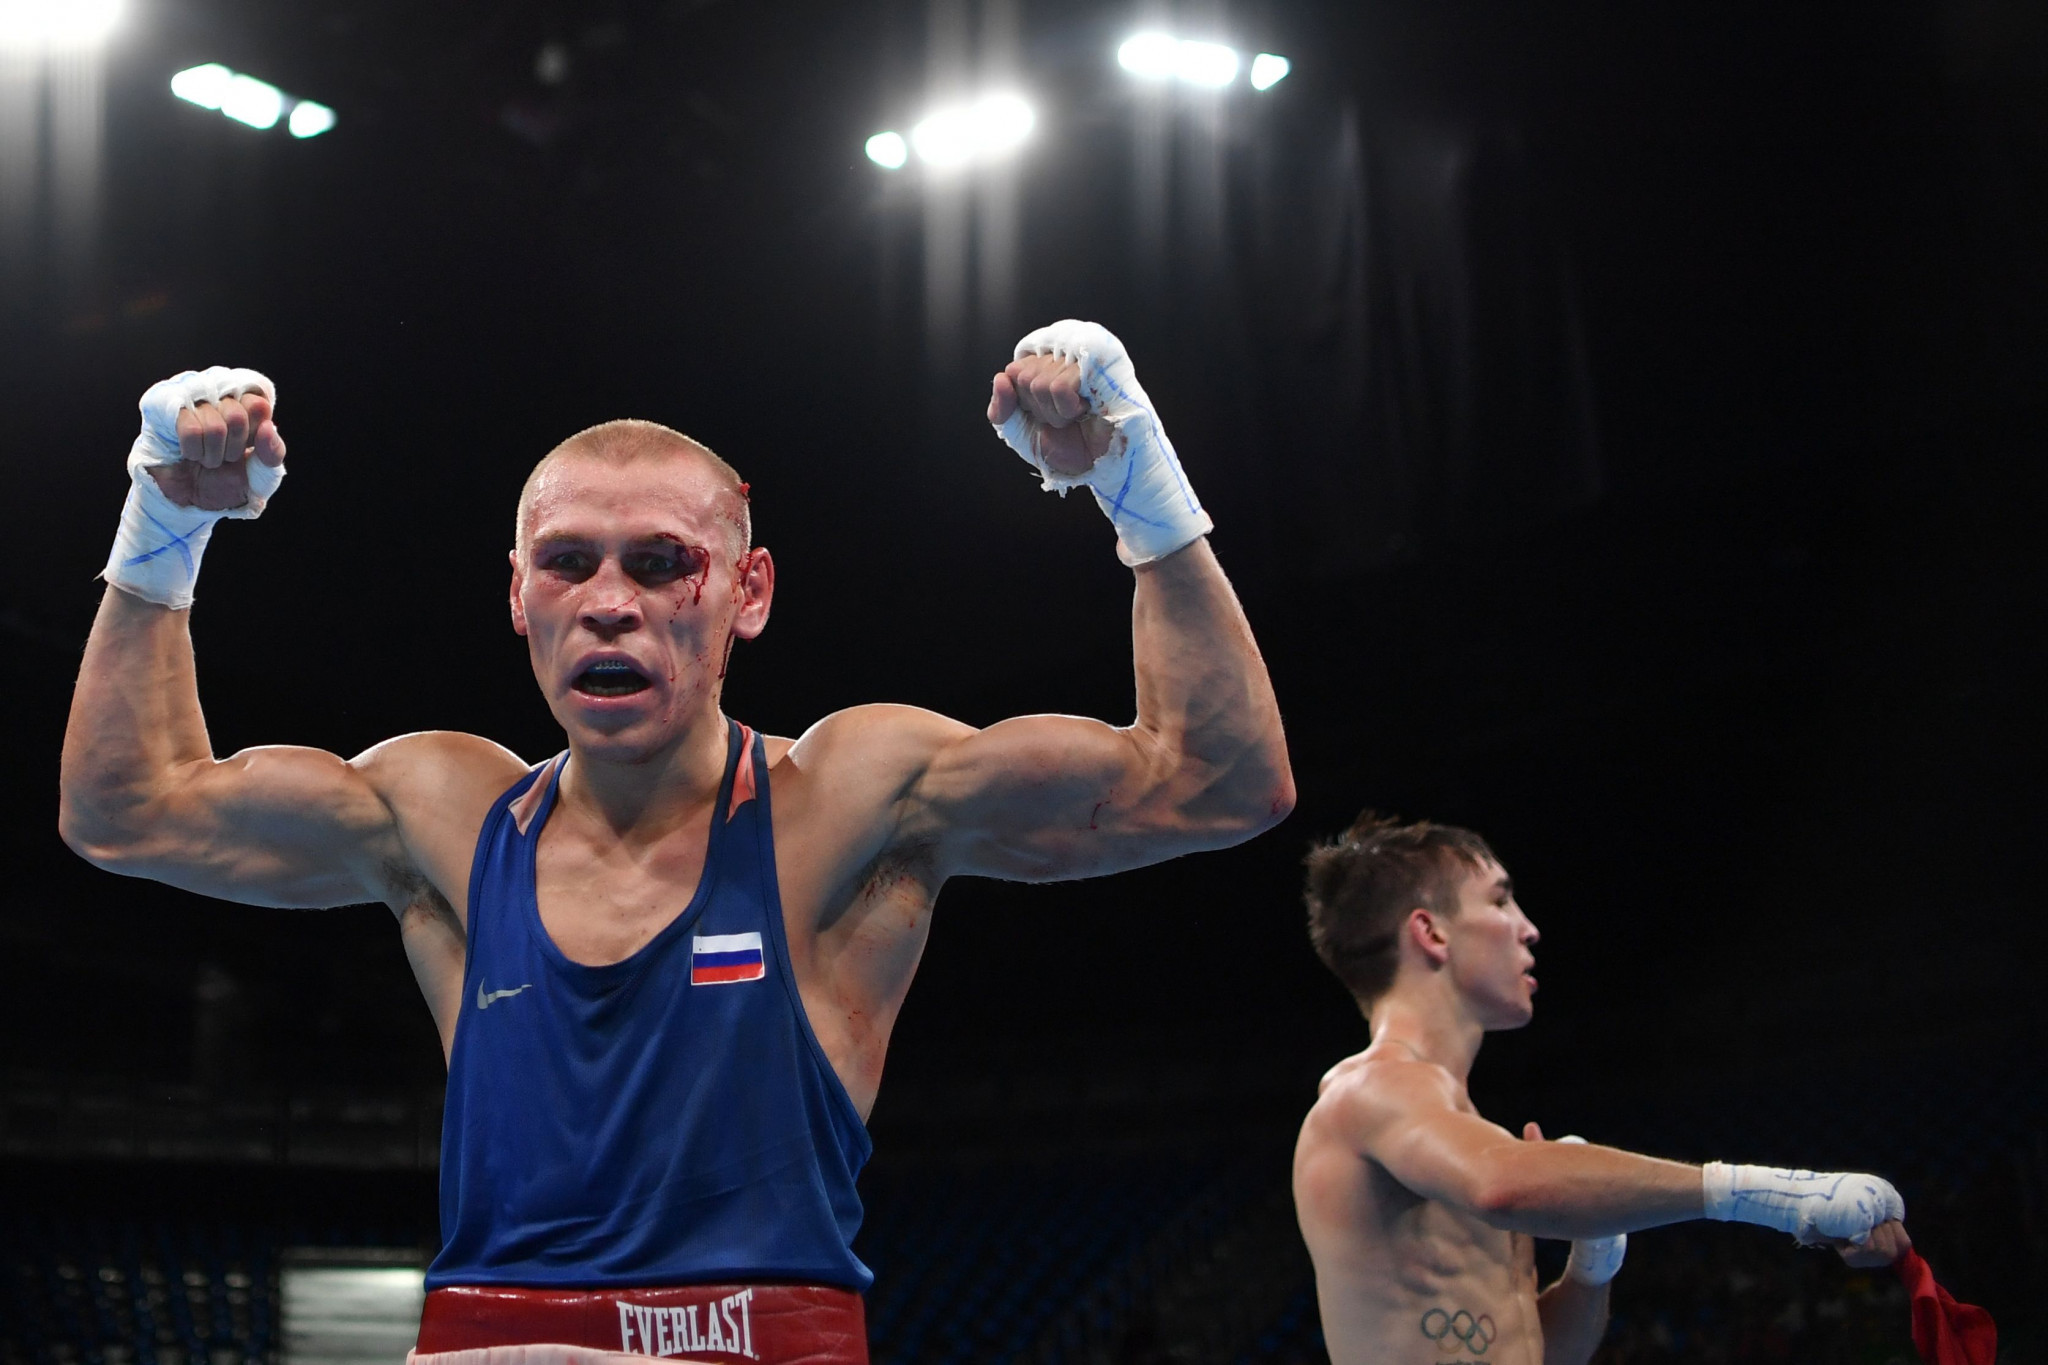 Vladimir Nikitin's controversial victory over Michael Conlan at Rio 2016 was followed by all of the judges at the Games being suspended ©Getty Images